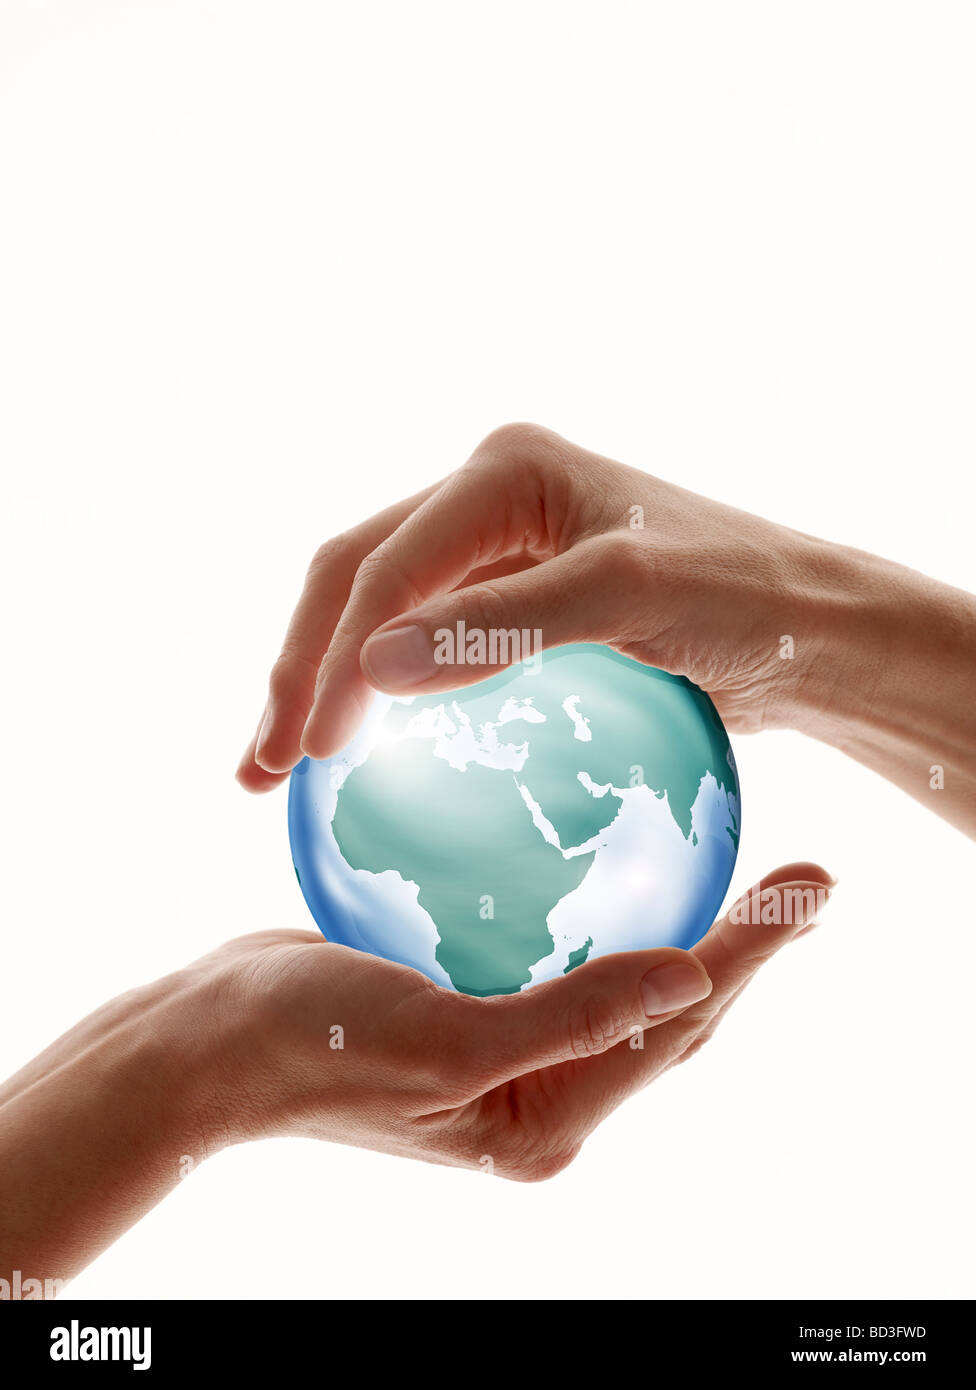 Two hands encircling glass globe isolated against white - Stock Image